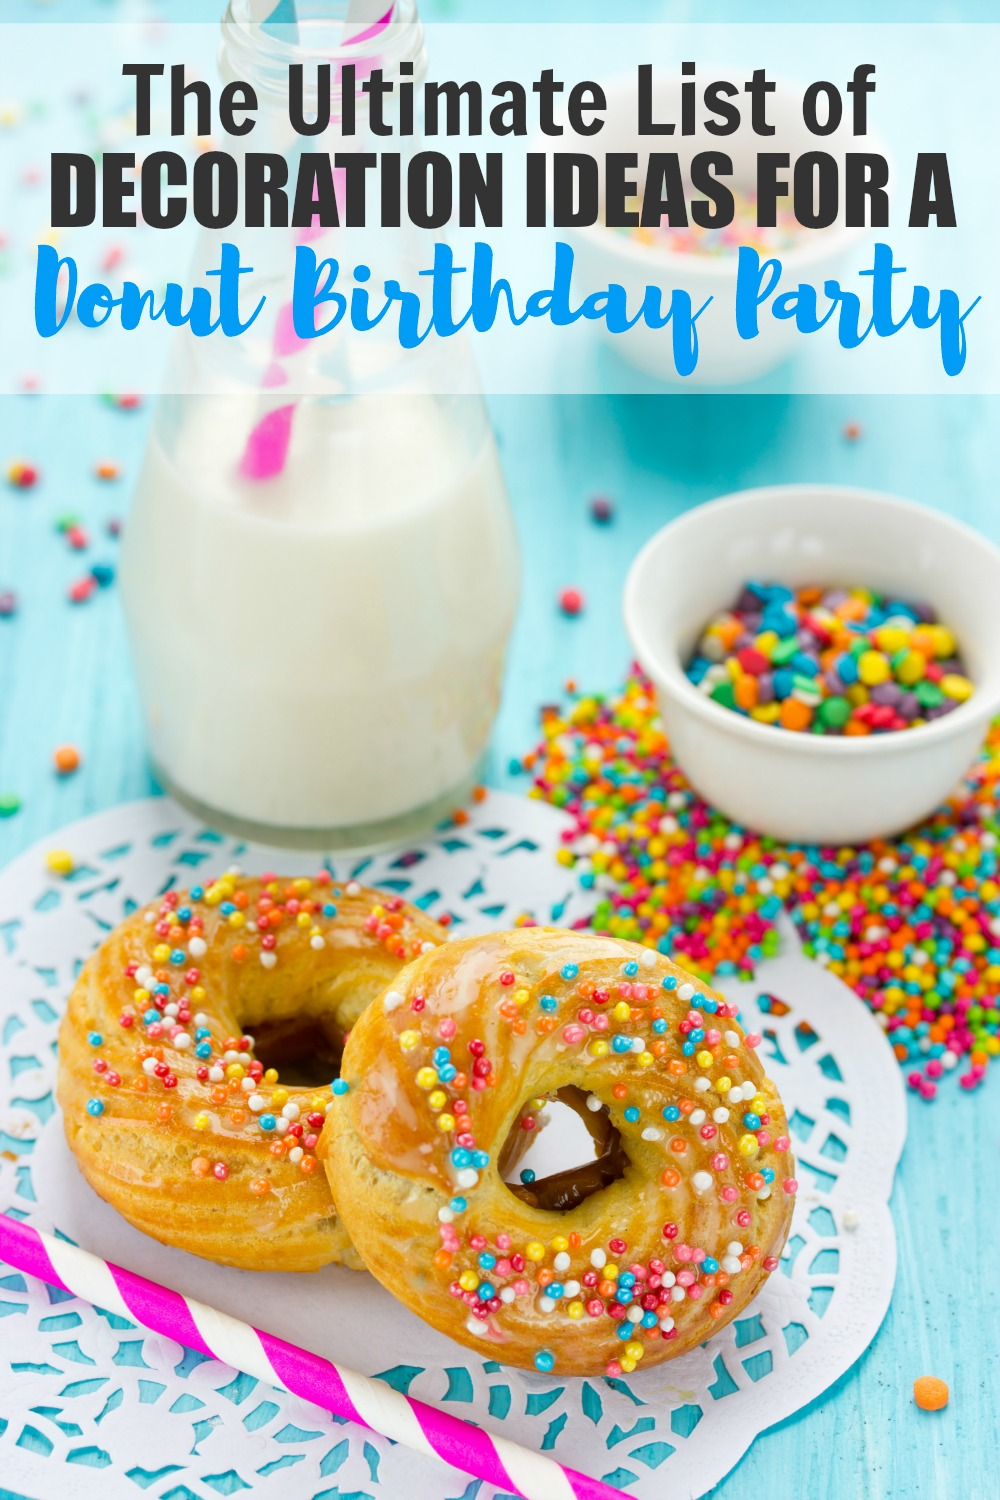 Planning a Donut Birthday Party or Donut Themed Shower? This is the ultimate list of decoration ideas and party supplies for the sweetest party! #donuts #partysupplies #donutparty #parties365